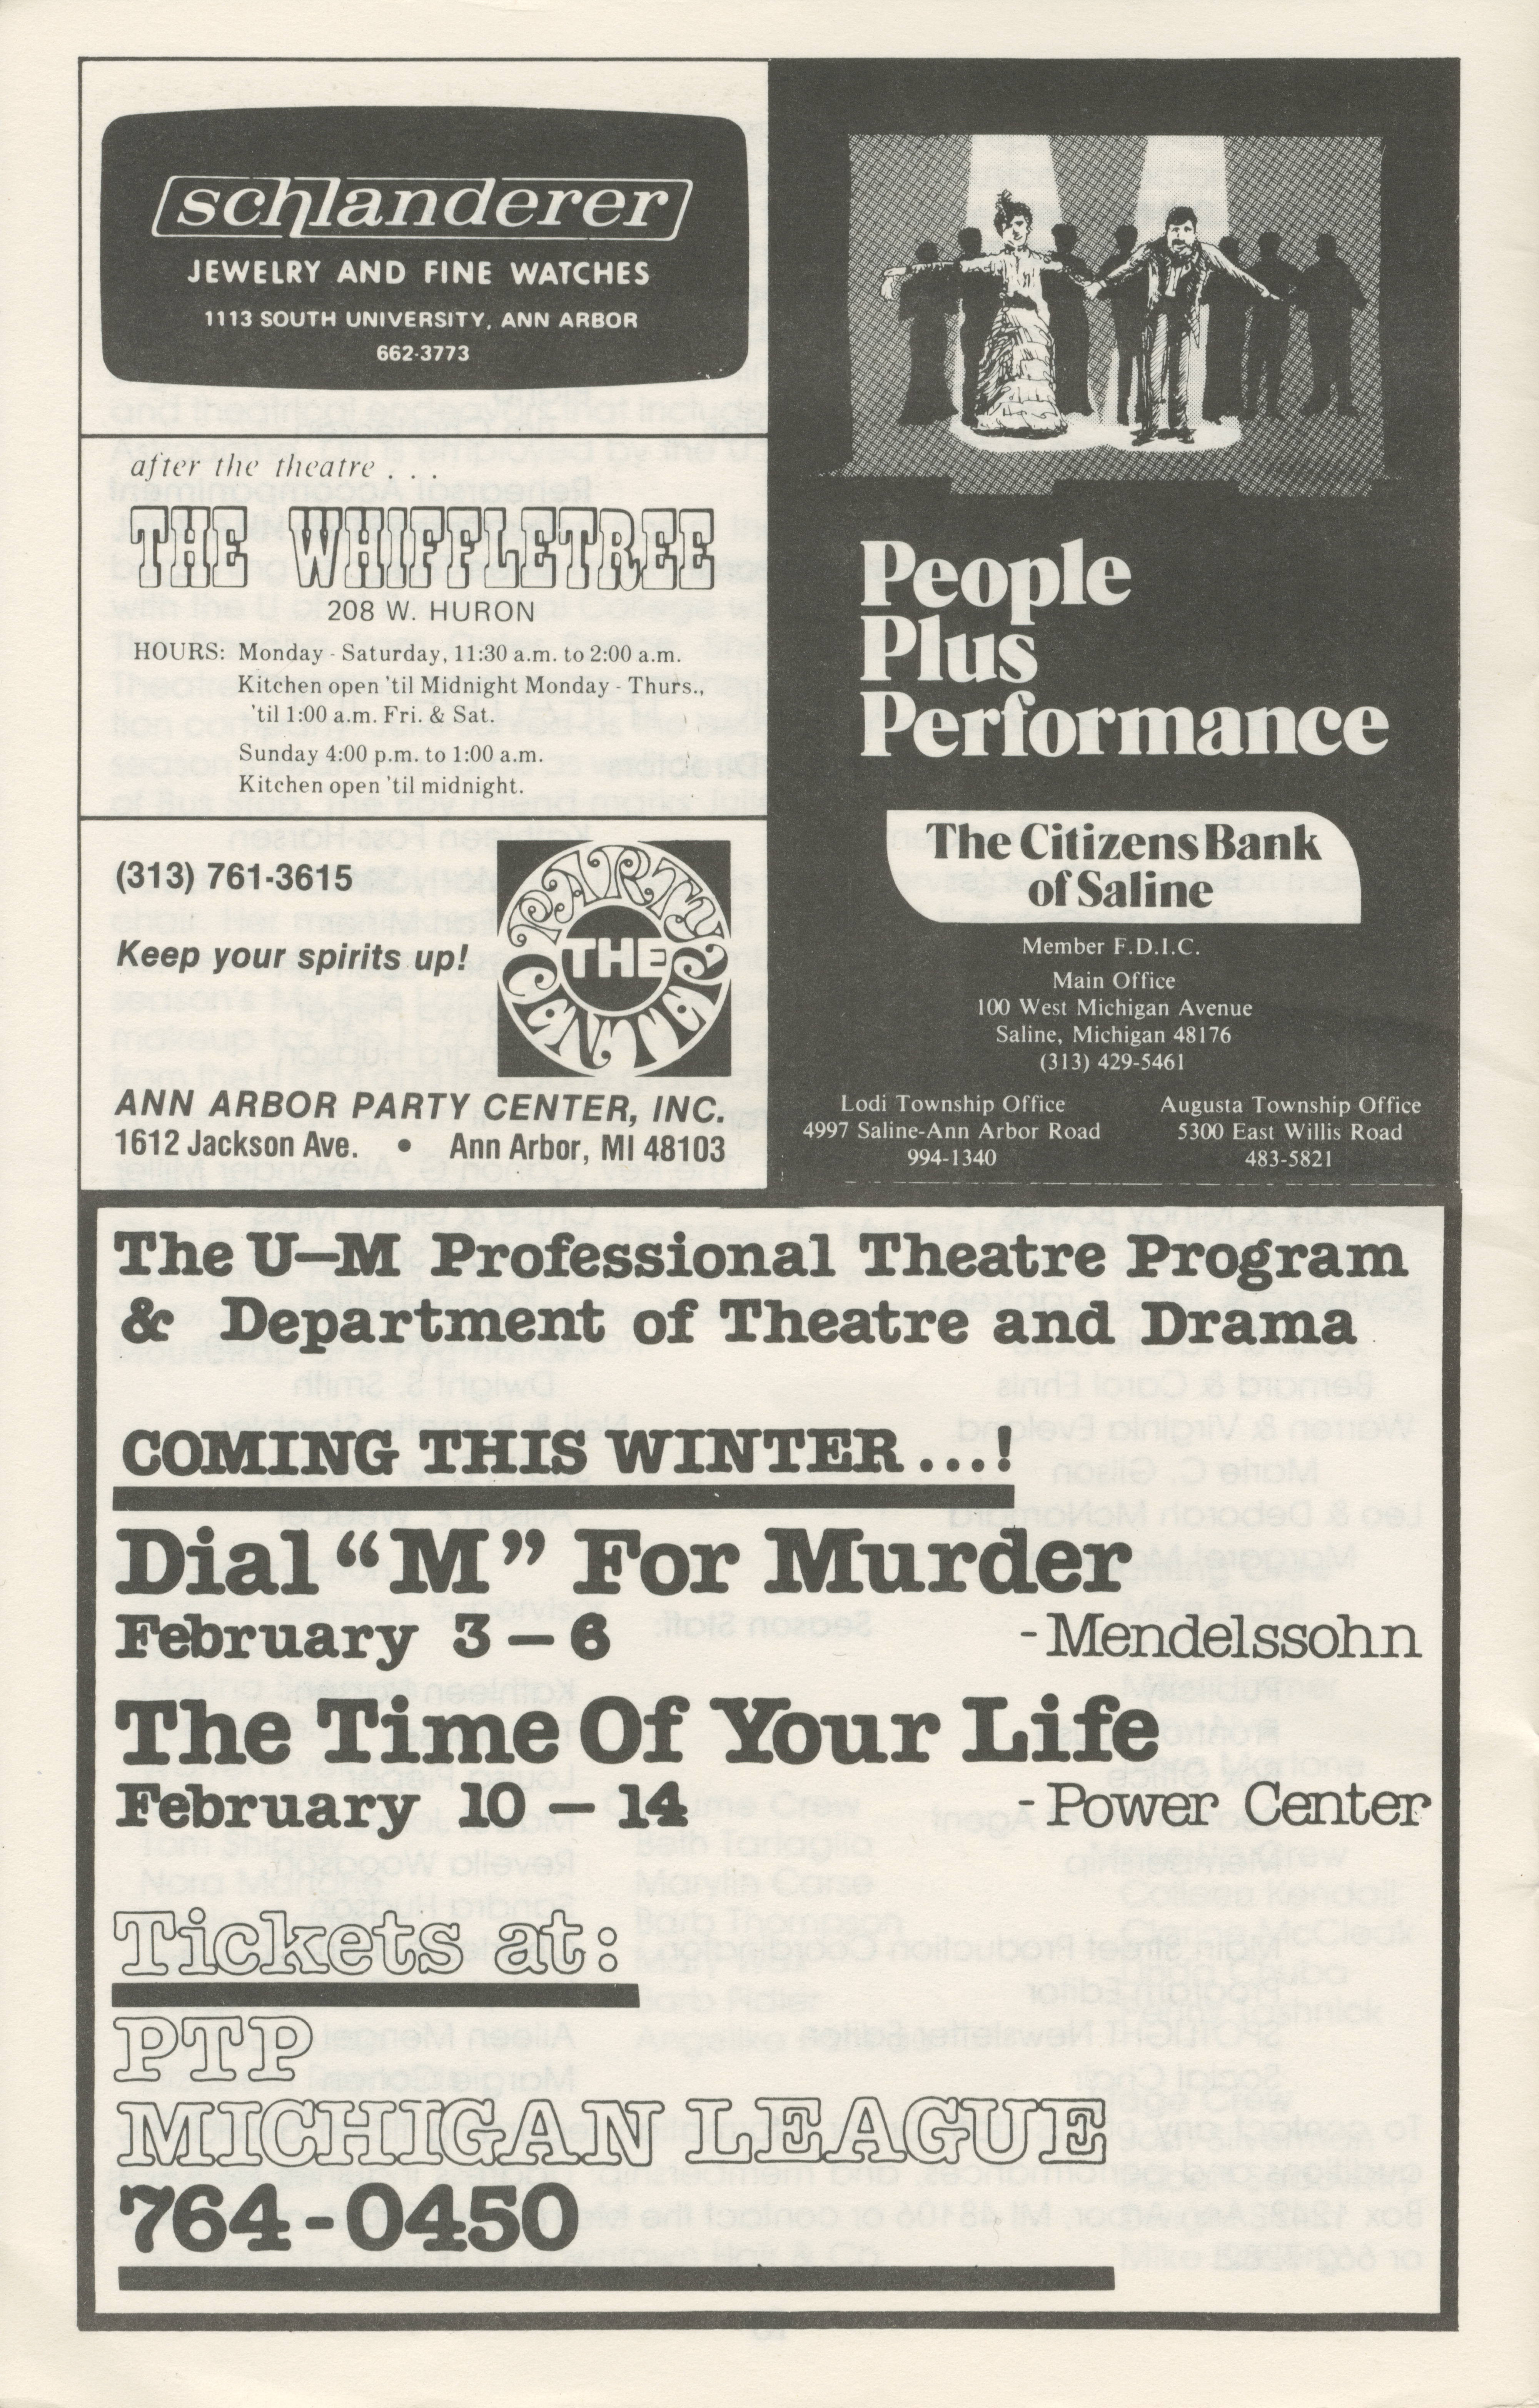 Ann Arbor Civic Theatre Program: The Boy Friend, December 16, 1981 image